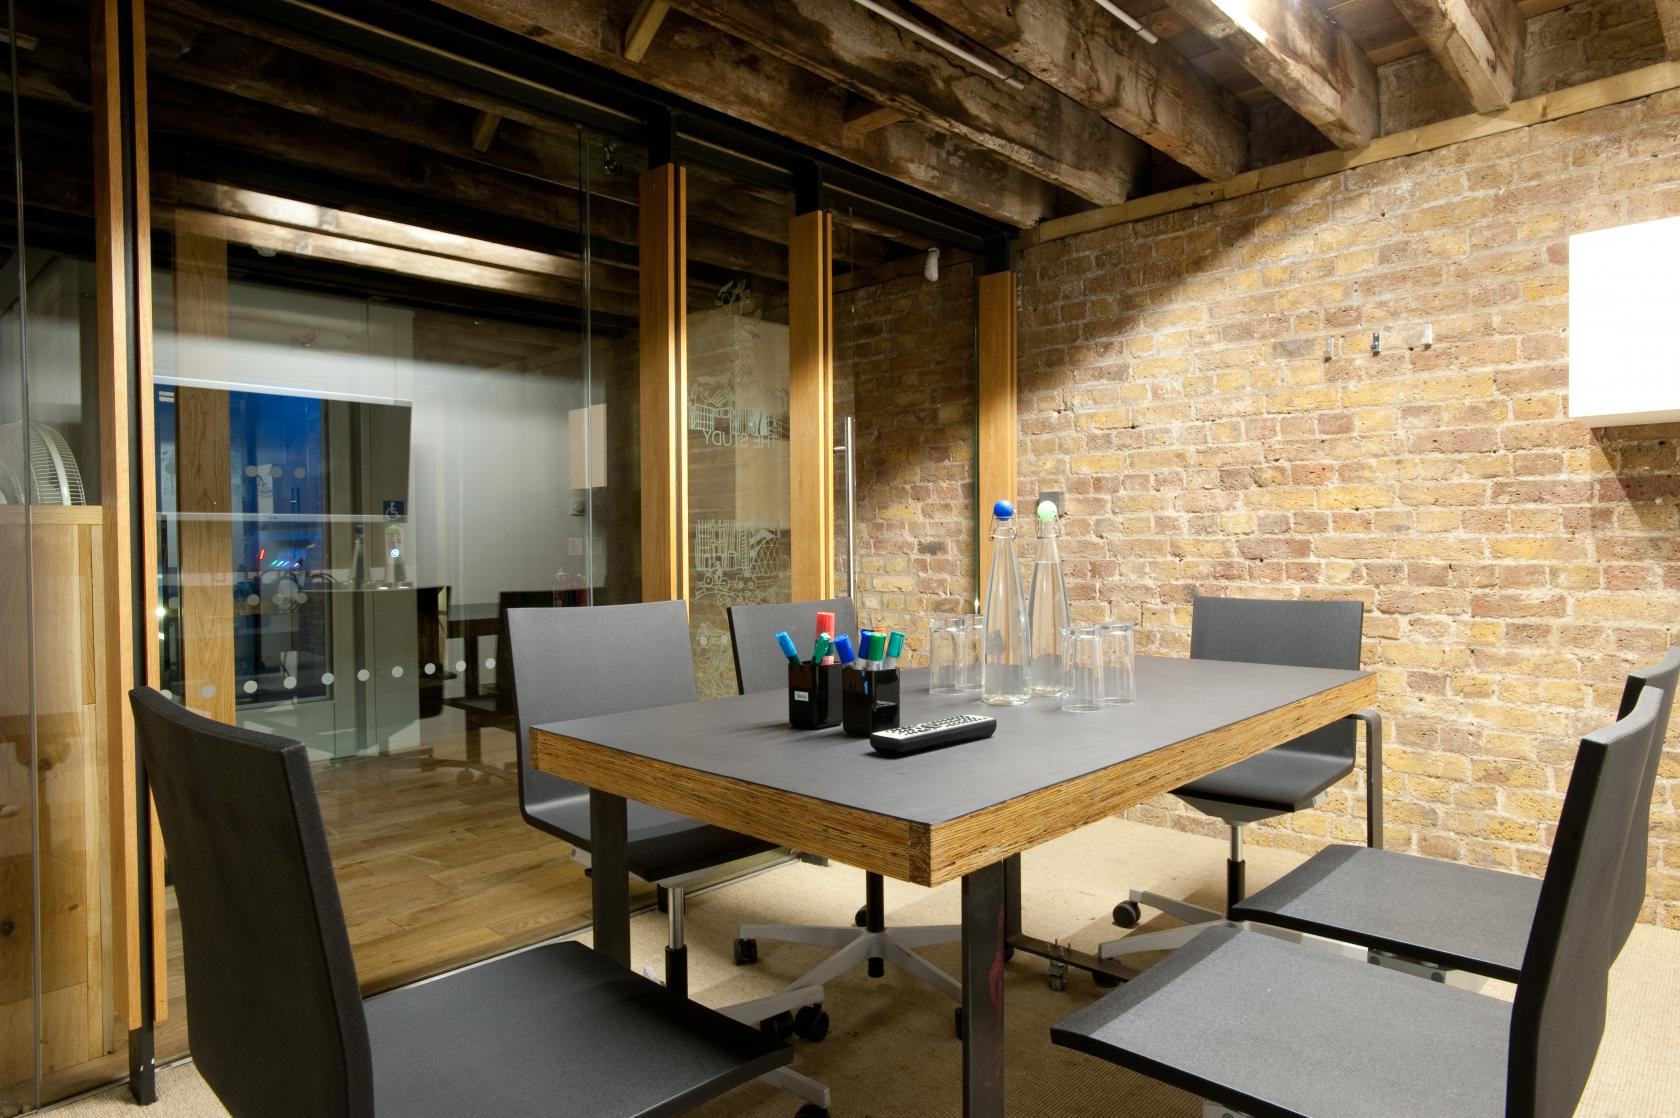 Impact Hub is a groundbreaking space for hosting meetings, workshops, conferences and training events.